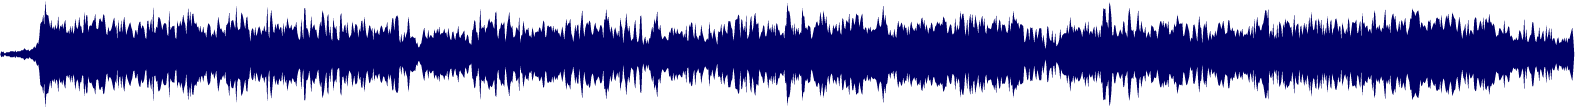 waveform of track #81416